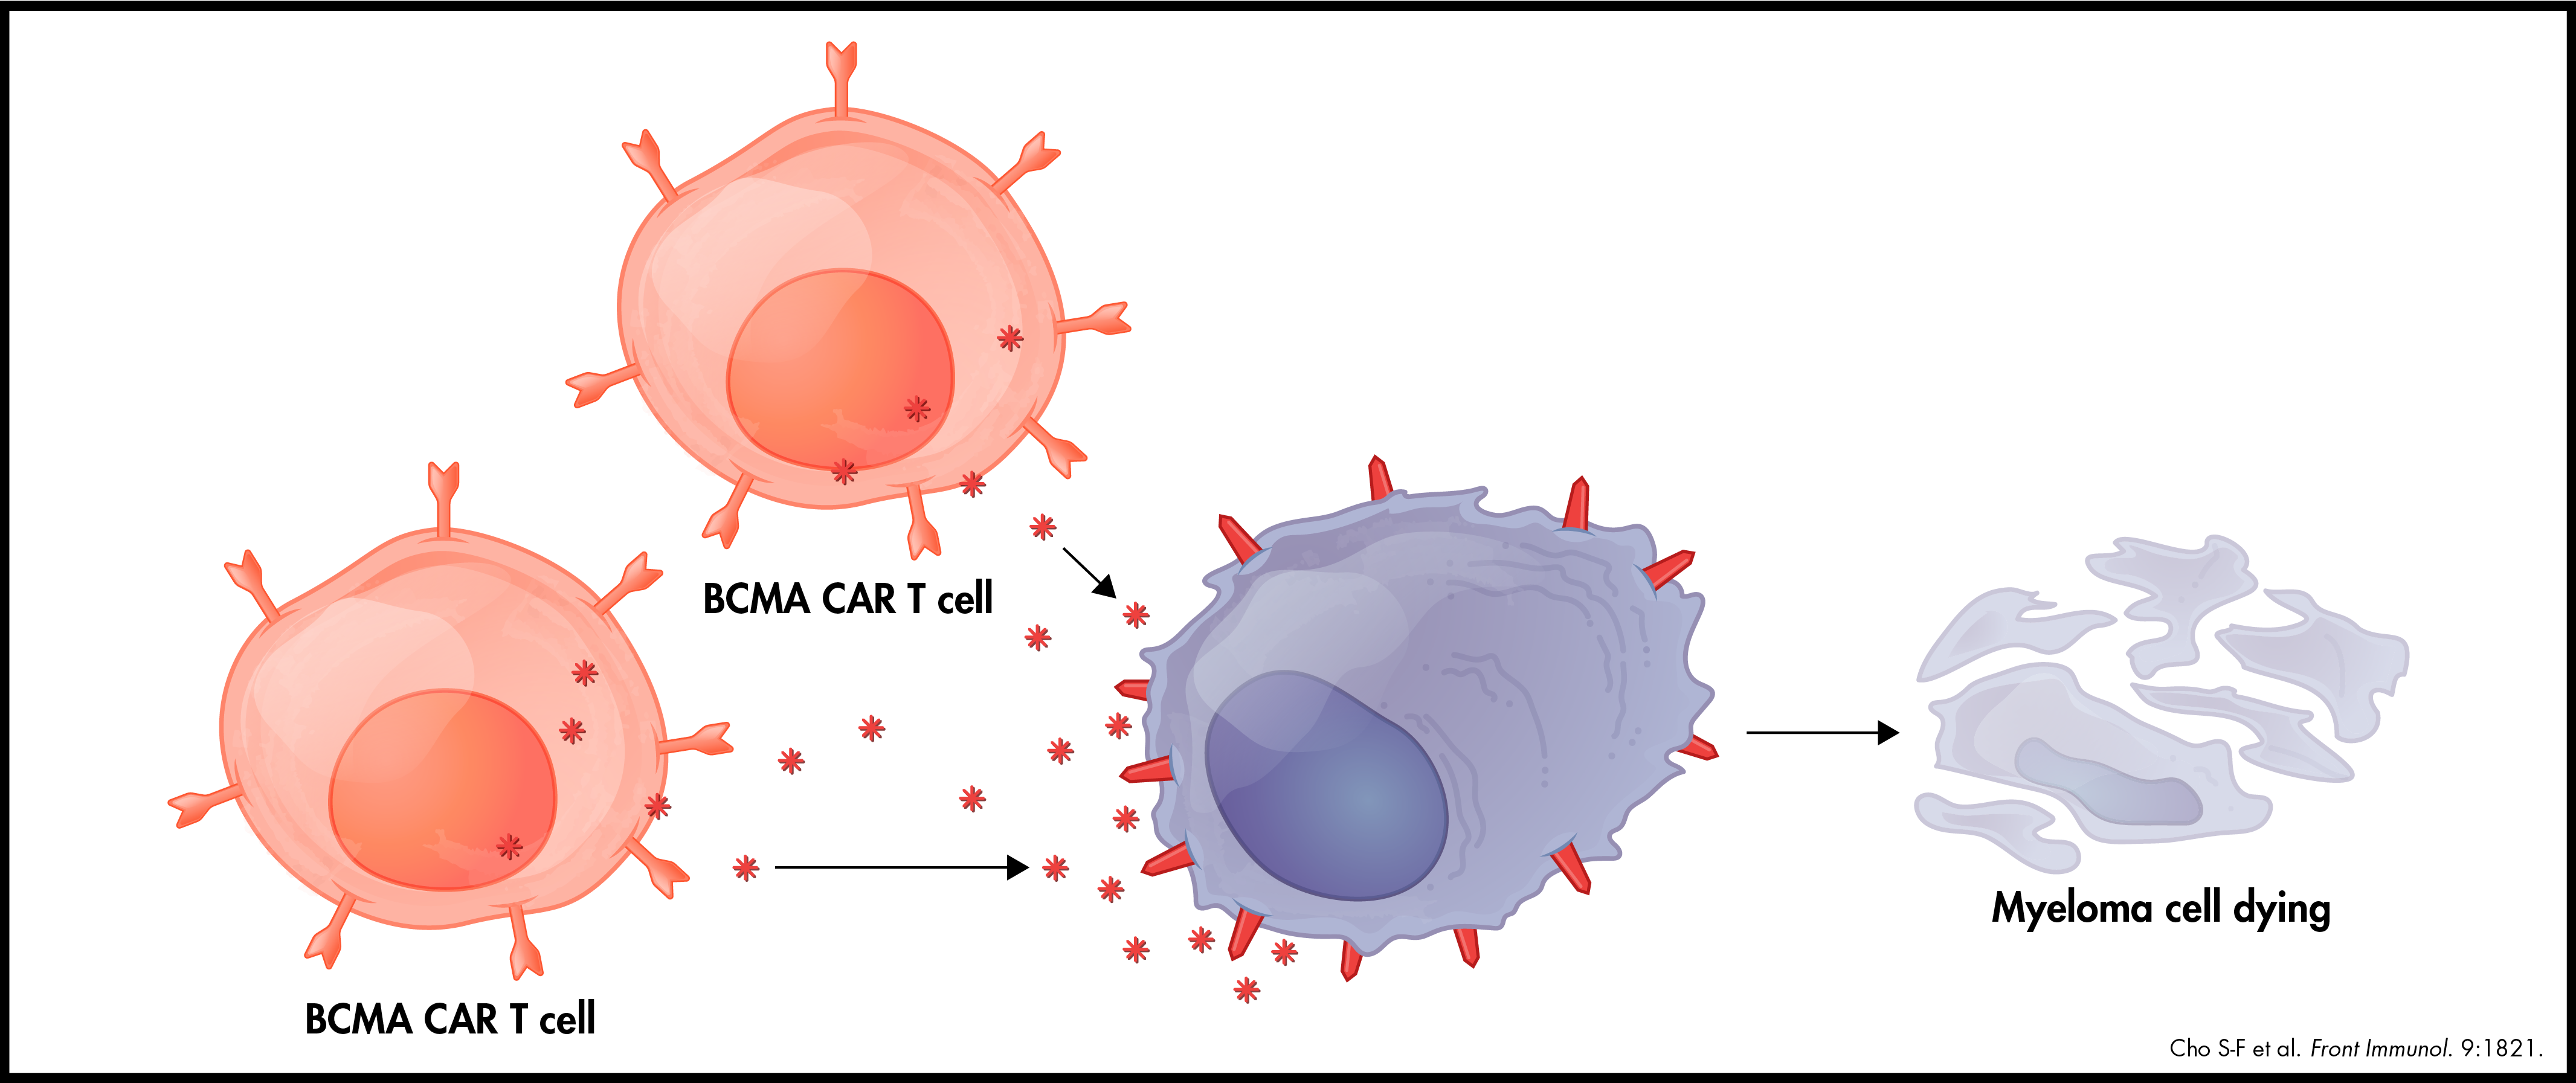 BCMA CAR T cells killing Myeloma cell